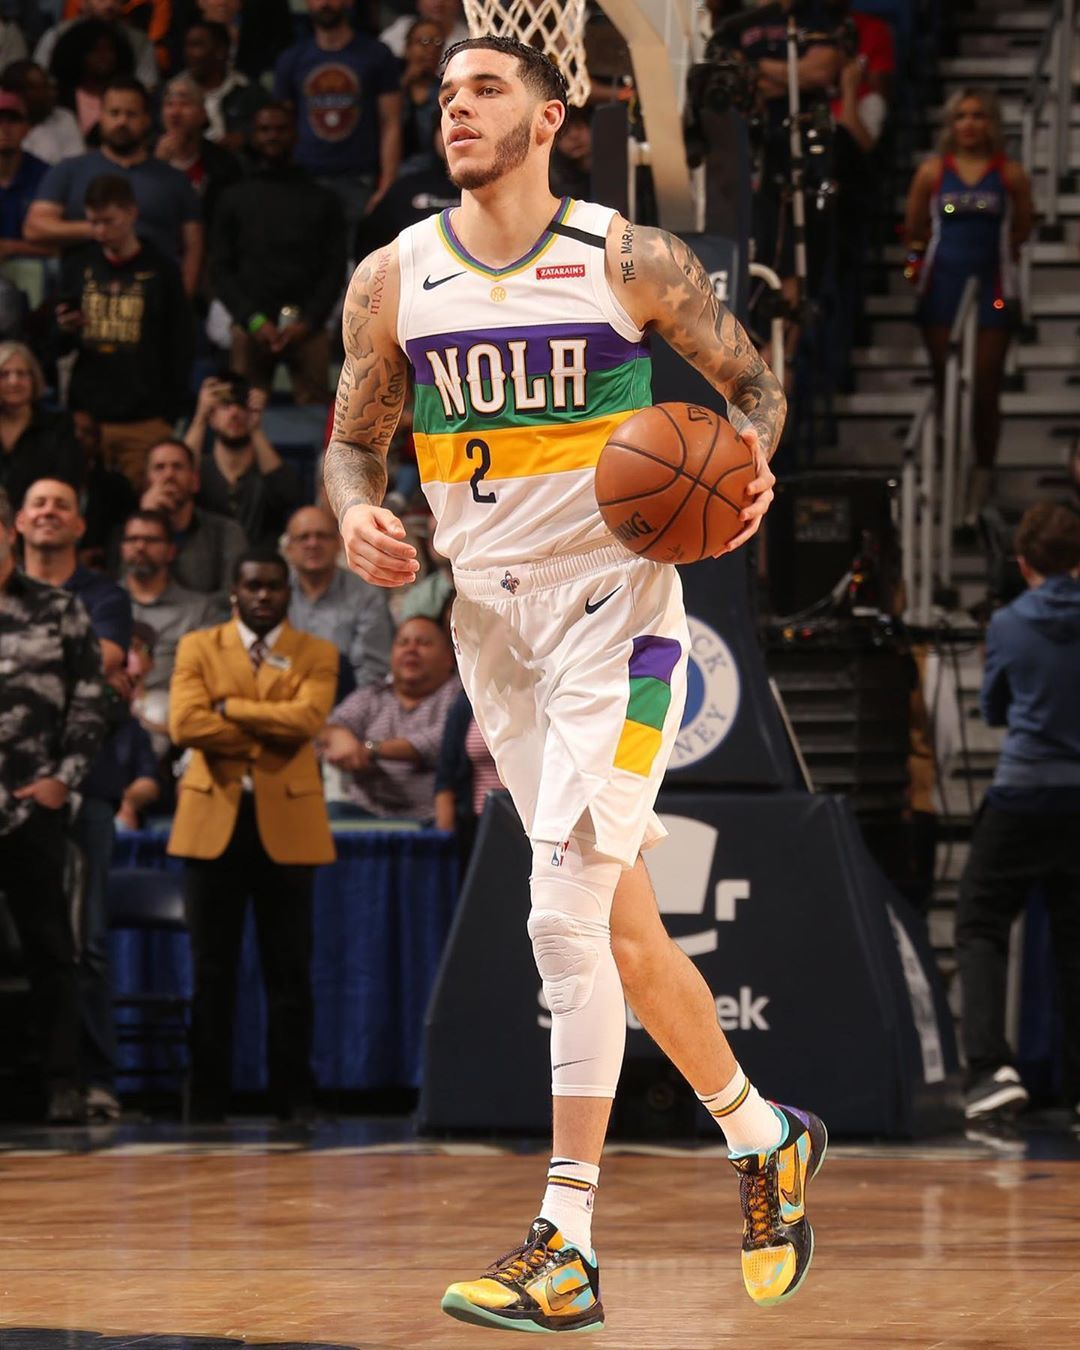 Lonzo Ball On Instagram Yo Feet Could Have No Bones In Em You Still Can T Fit My Shoes Durkioworld In 2020 Lonzo Ball Kentucky Athletics Kicks